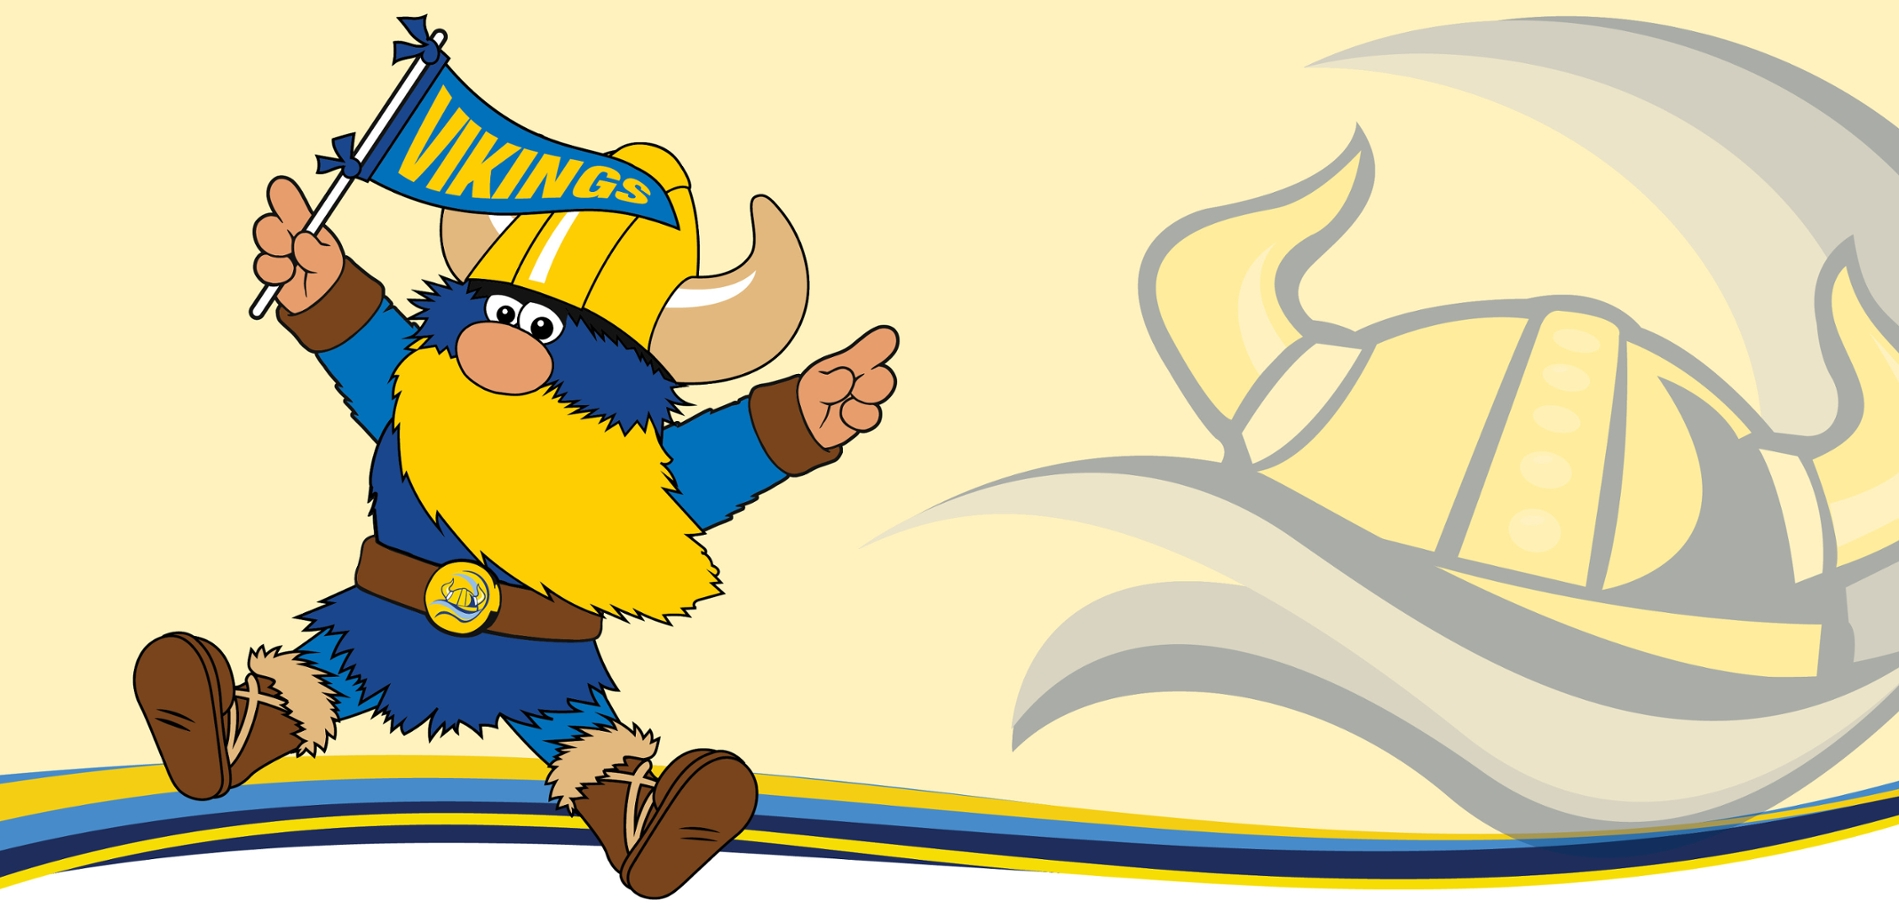 Valdar the Viking mascot holding pennant